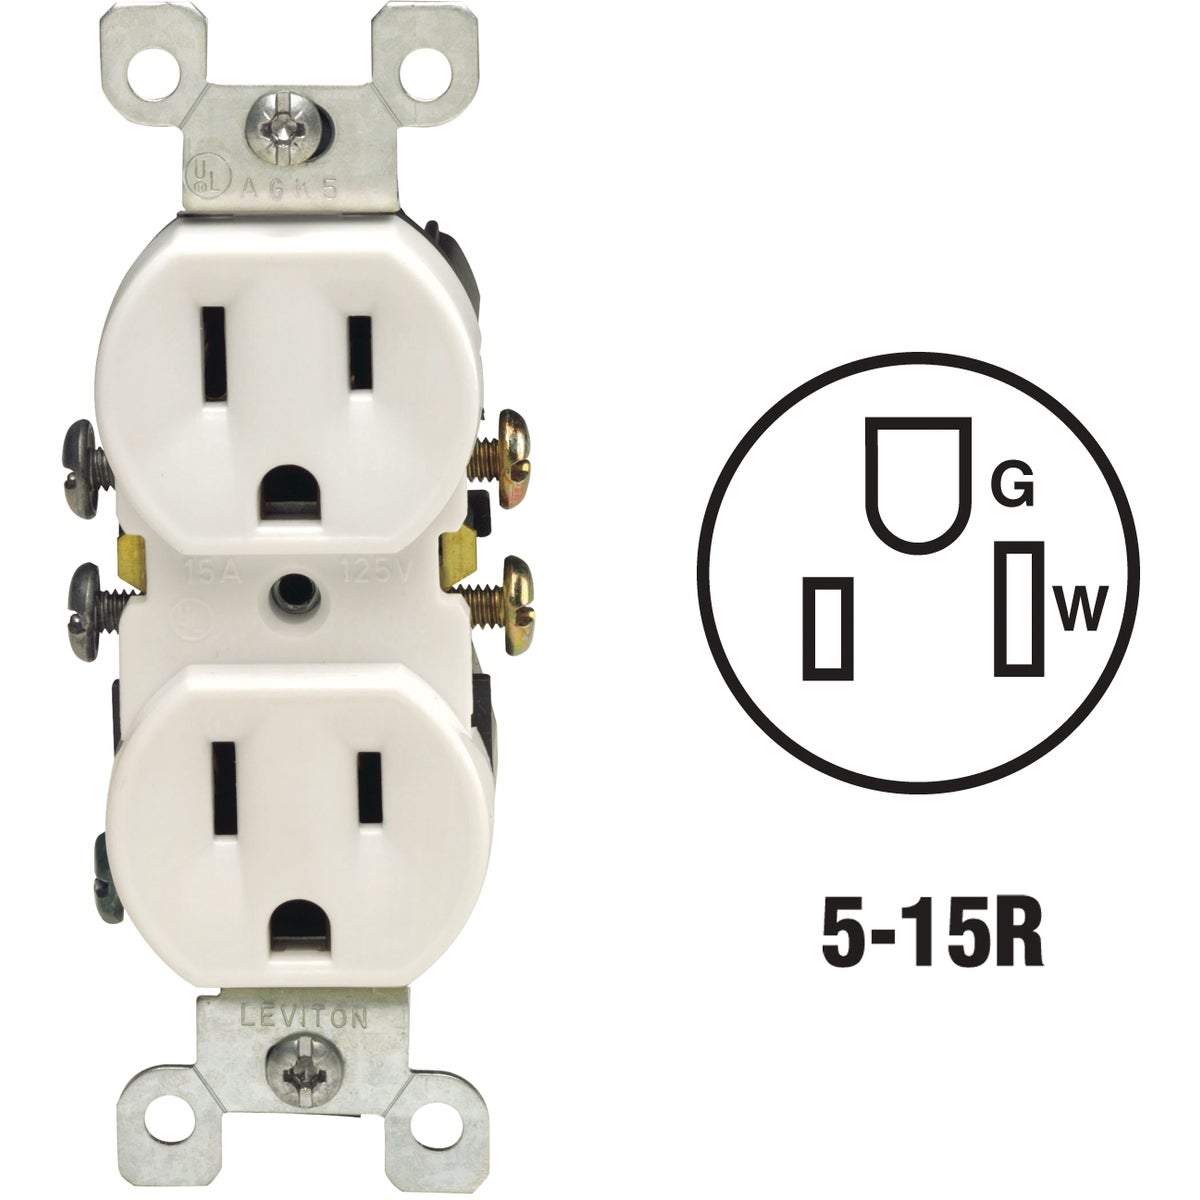 WHT DUPLEX OUTLET - 8765320W by Leviton Mfg Co